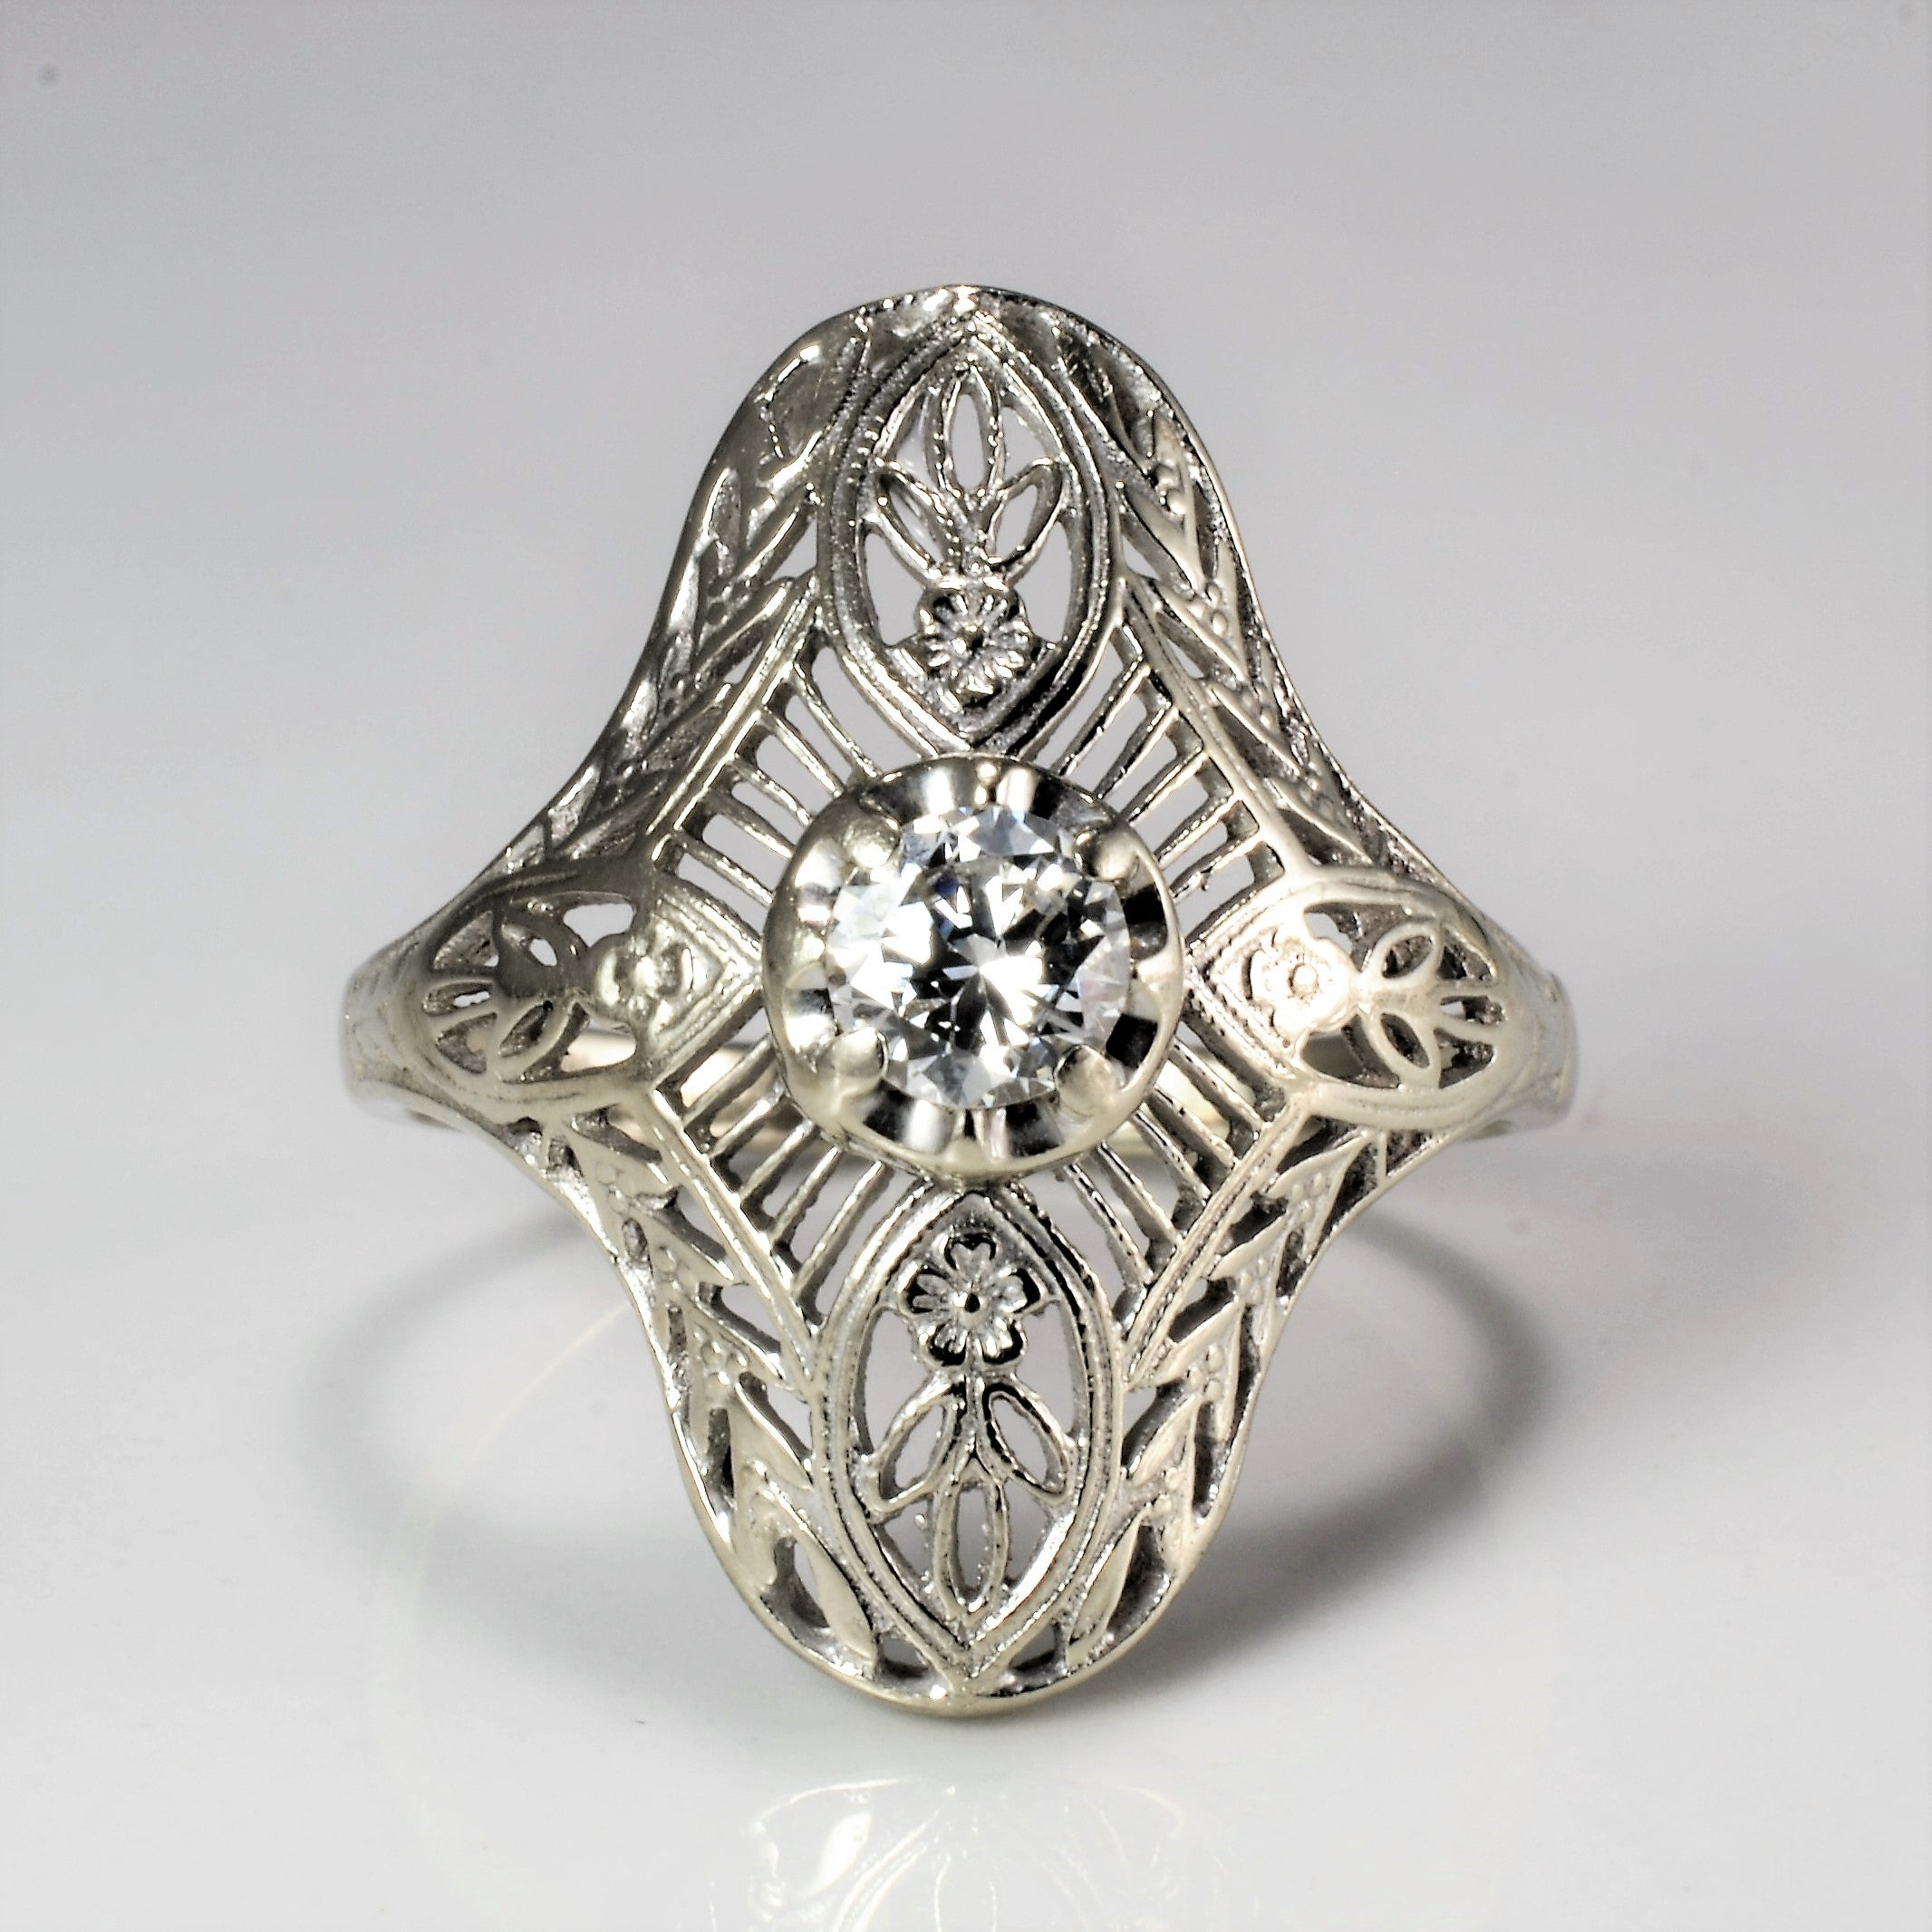 Filigree Solitaire Diamond Ladies Ring | 0.24 ct, SZ 5.75 |